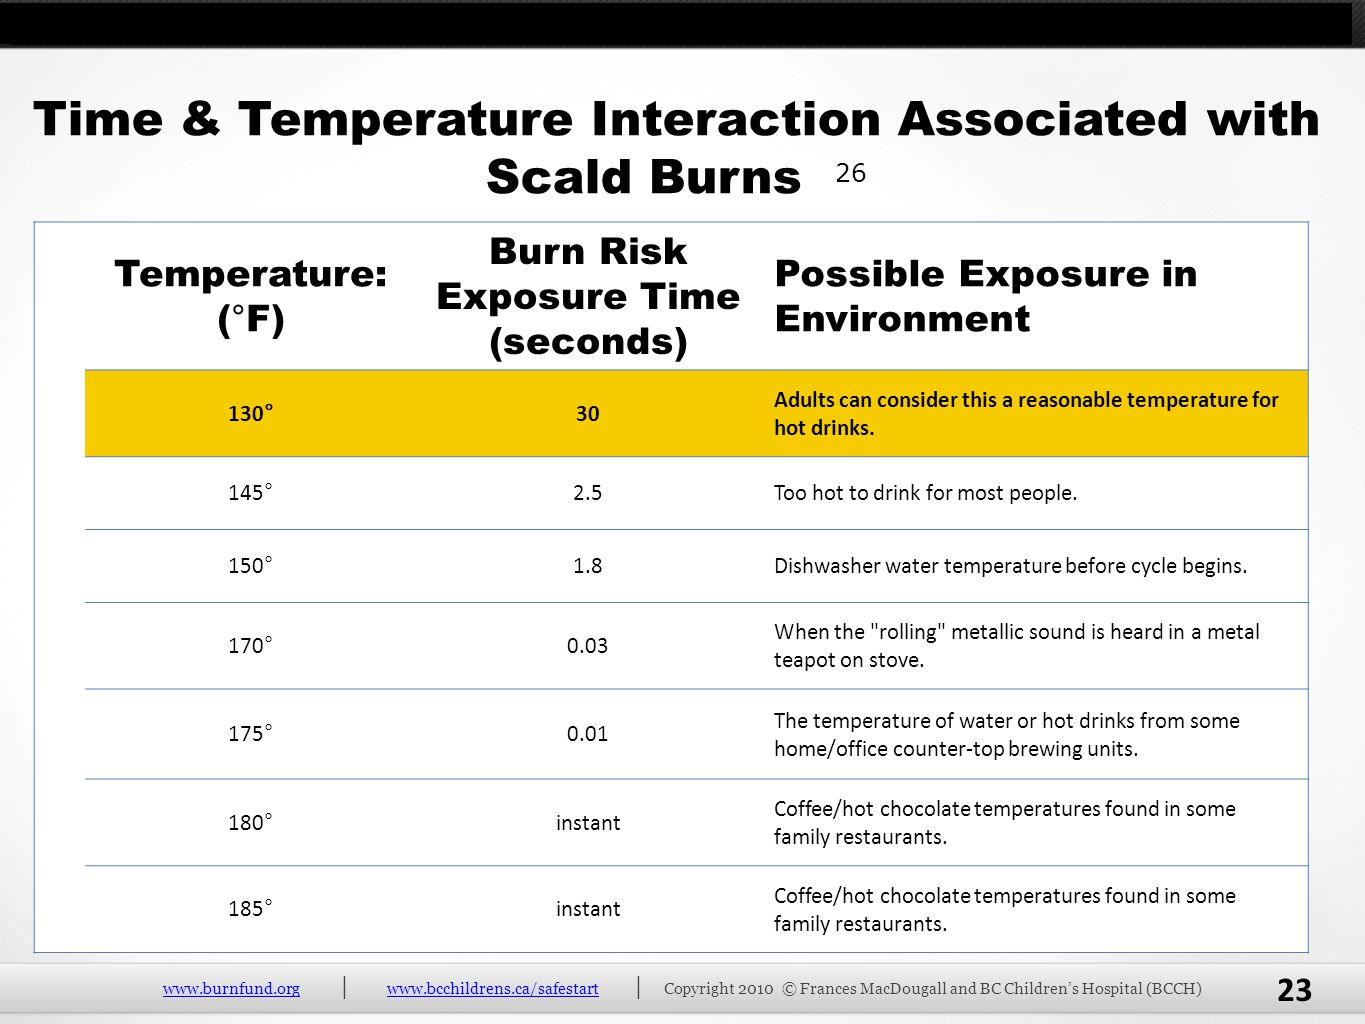 Time & Temperature Interaction Associated with Scald Burns 26